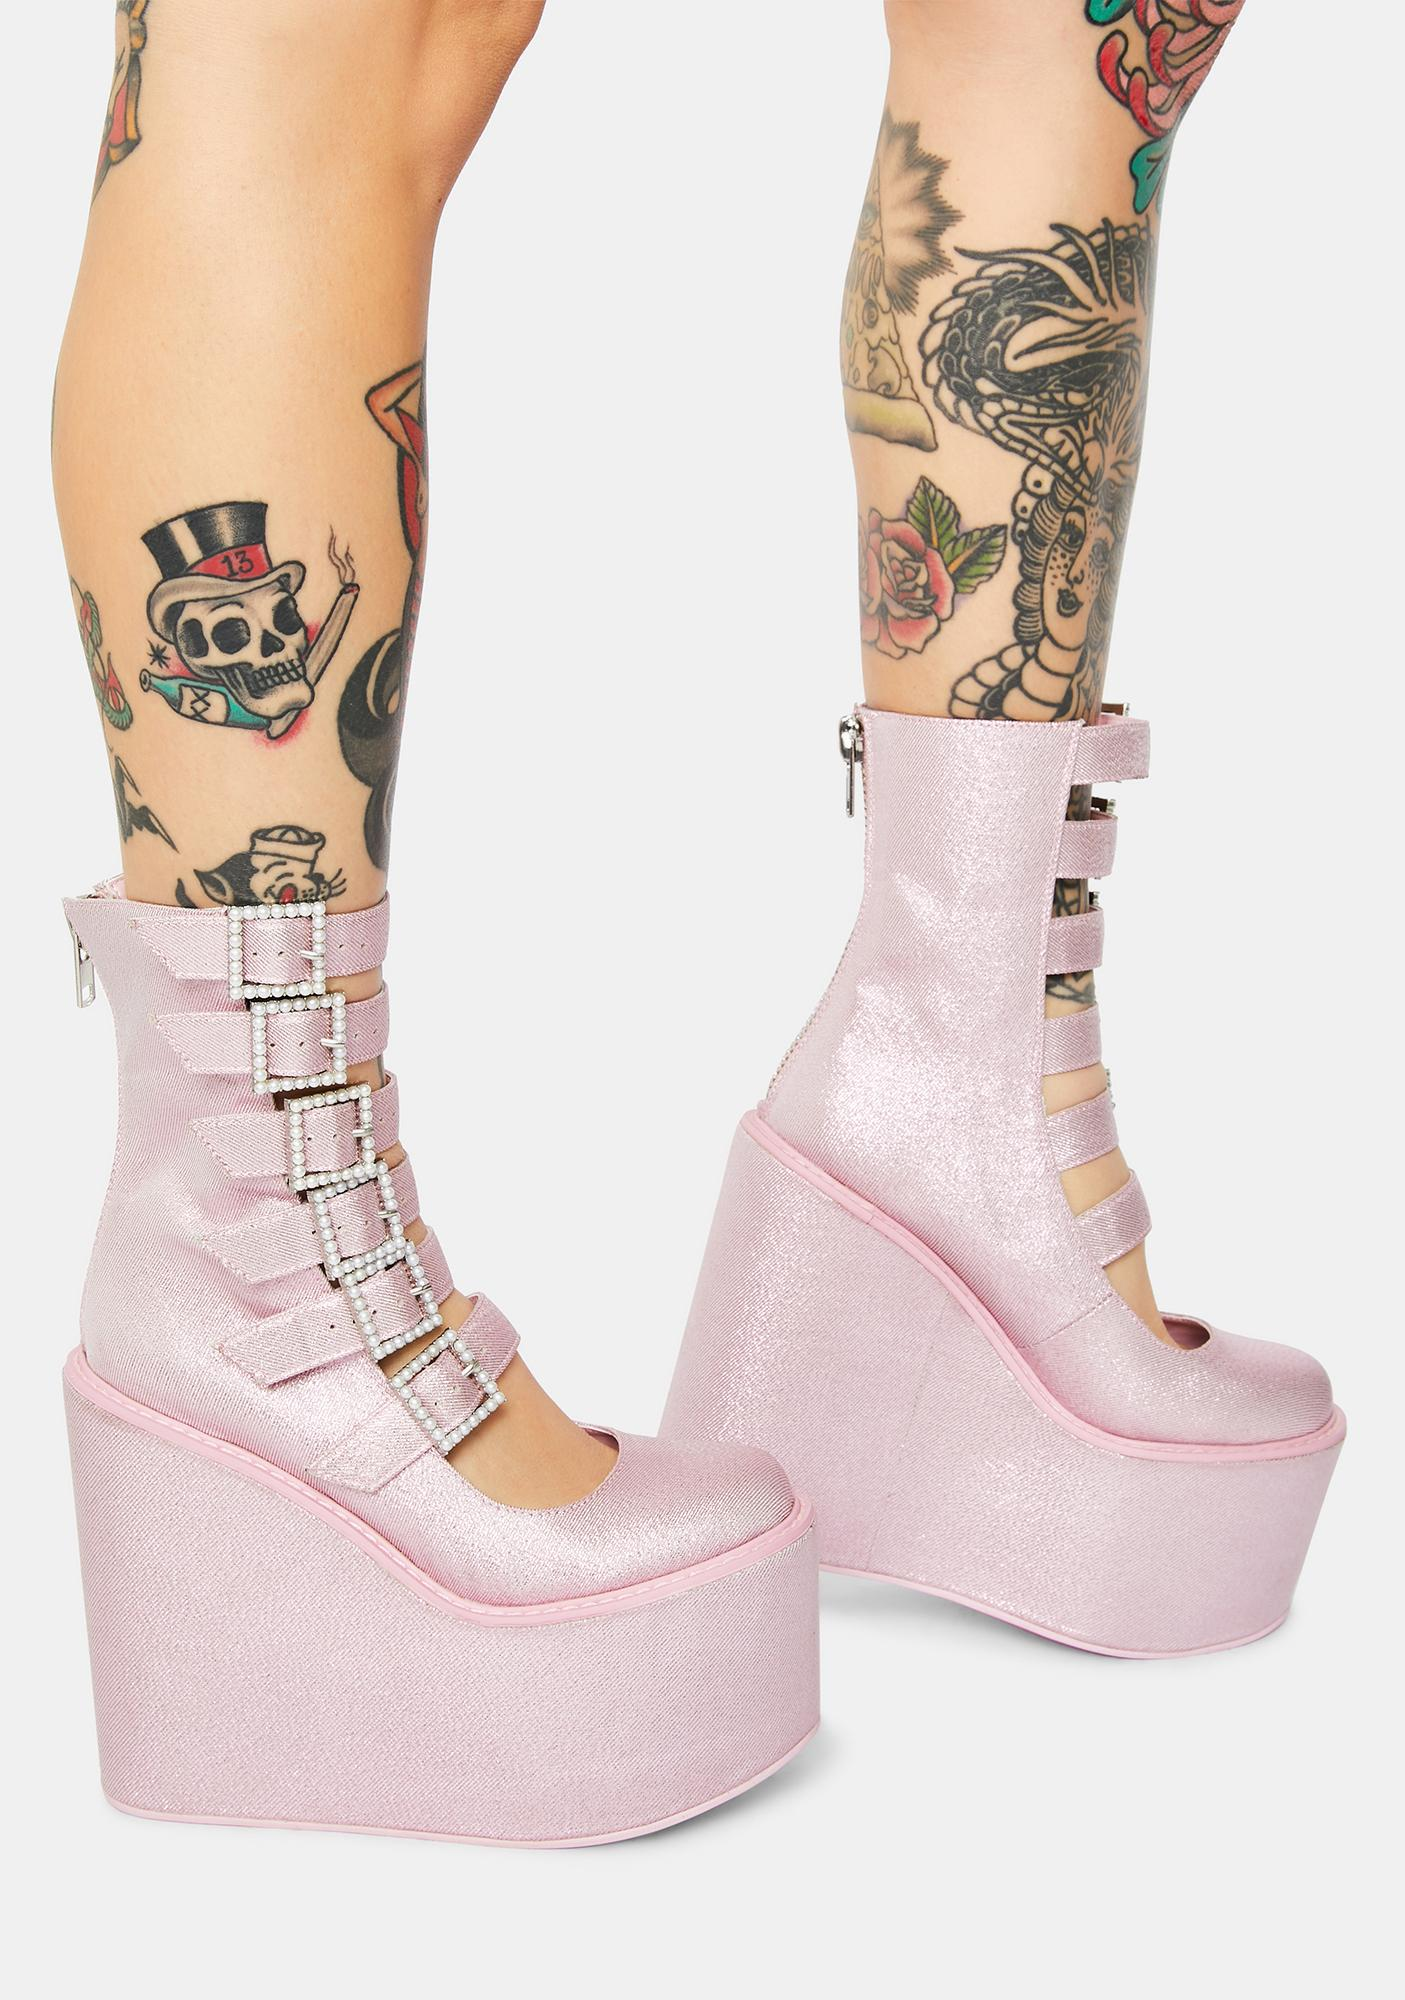 Sugar Thrillz Divine Last Act Rhinestone Buckle Traitor Boots